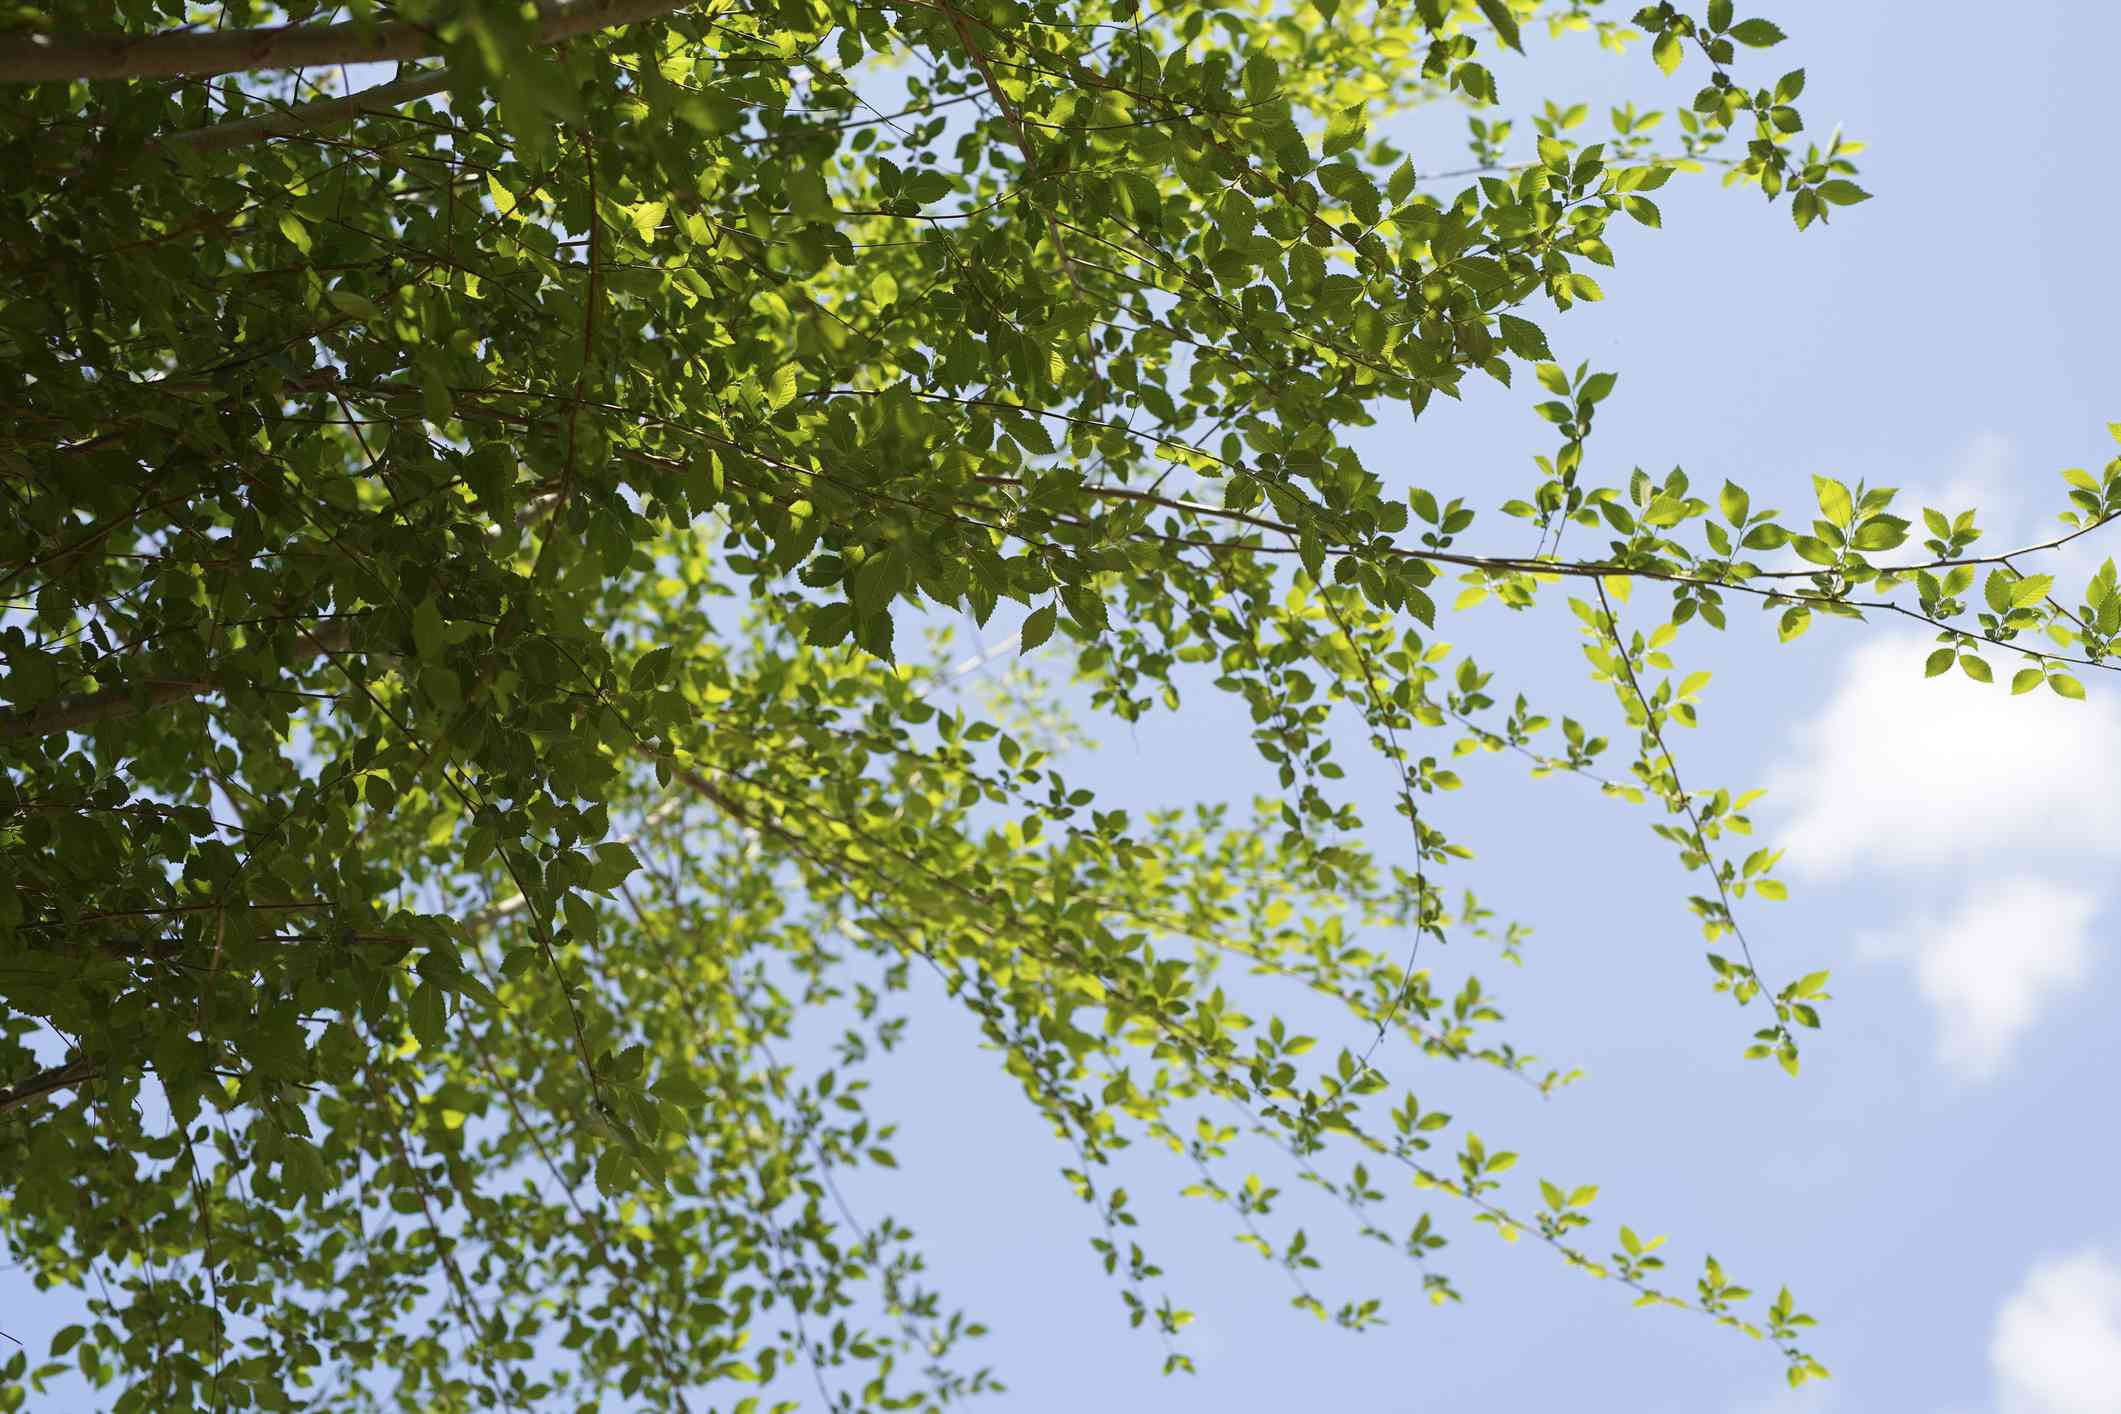 Green branches of the Siberian elm